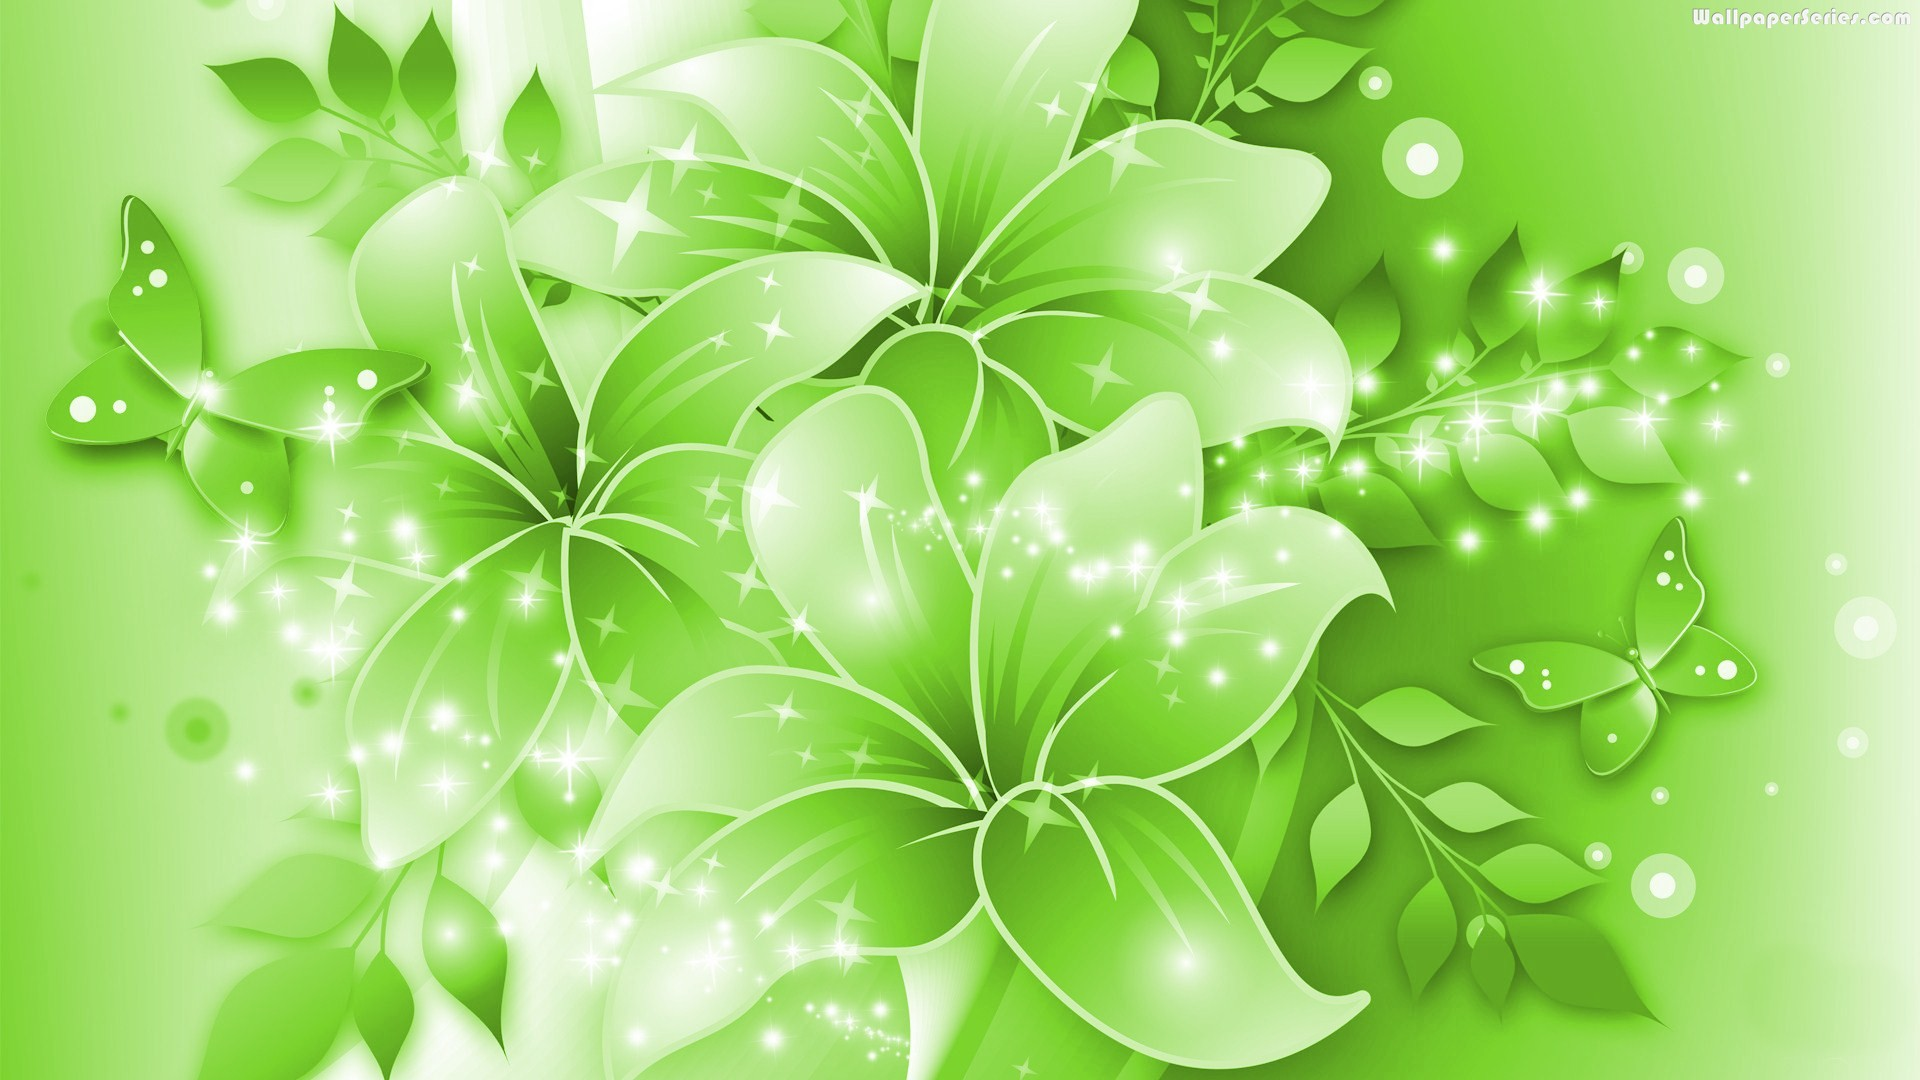 Aviation Wallpaper Iphone X Green Flower Wallpapers Animated Green Flower Image 27161